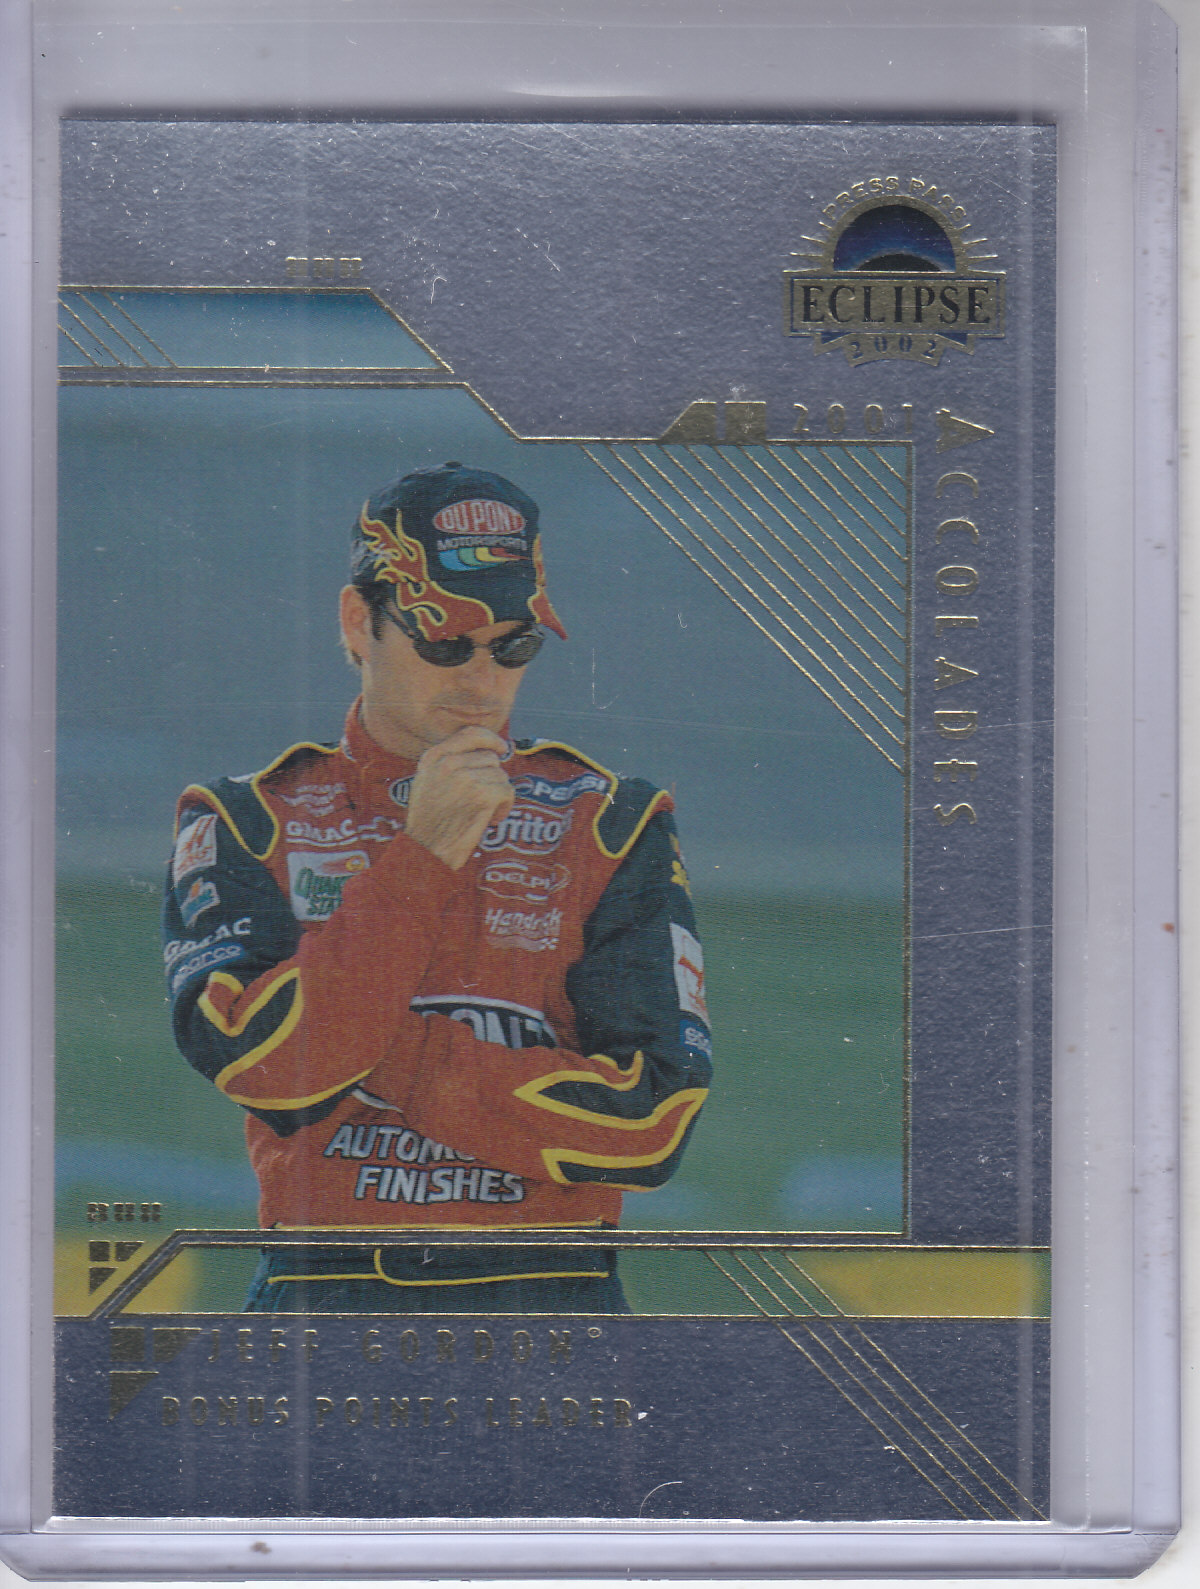 2002 Press Pass Eclipse Solar Eclipse #S35 Jeff Gordon ACC